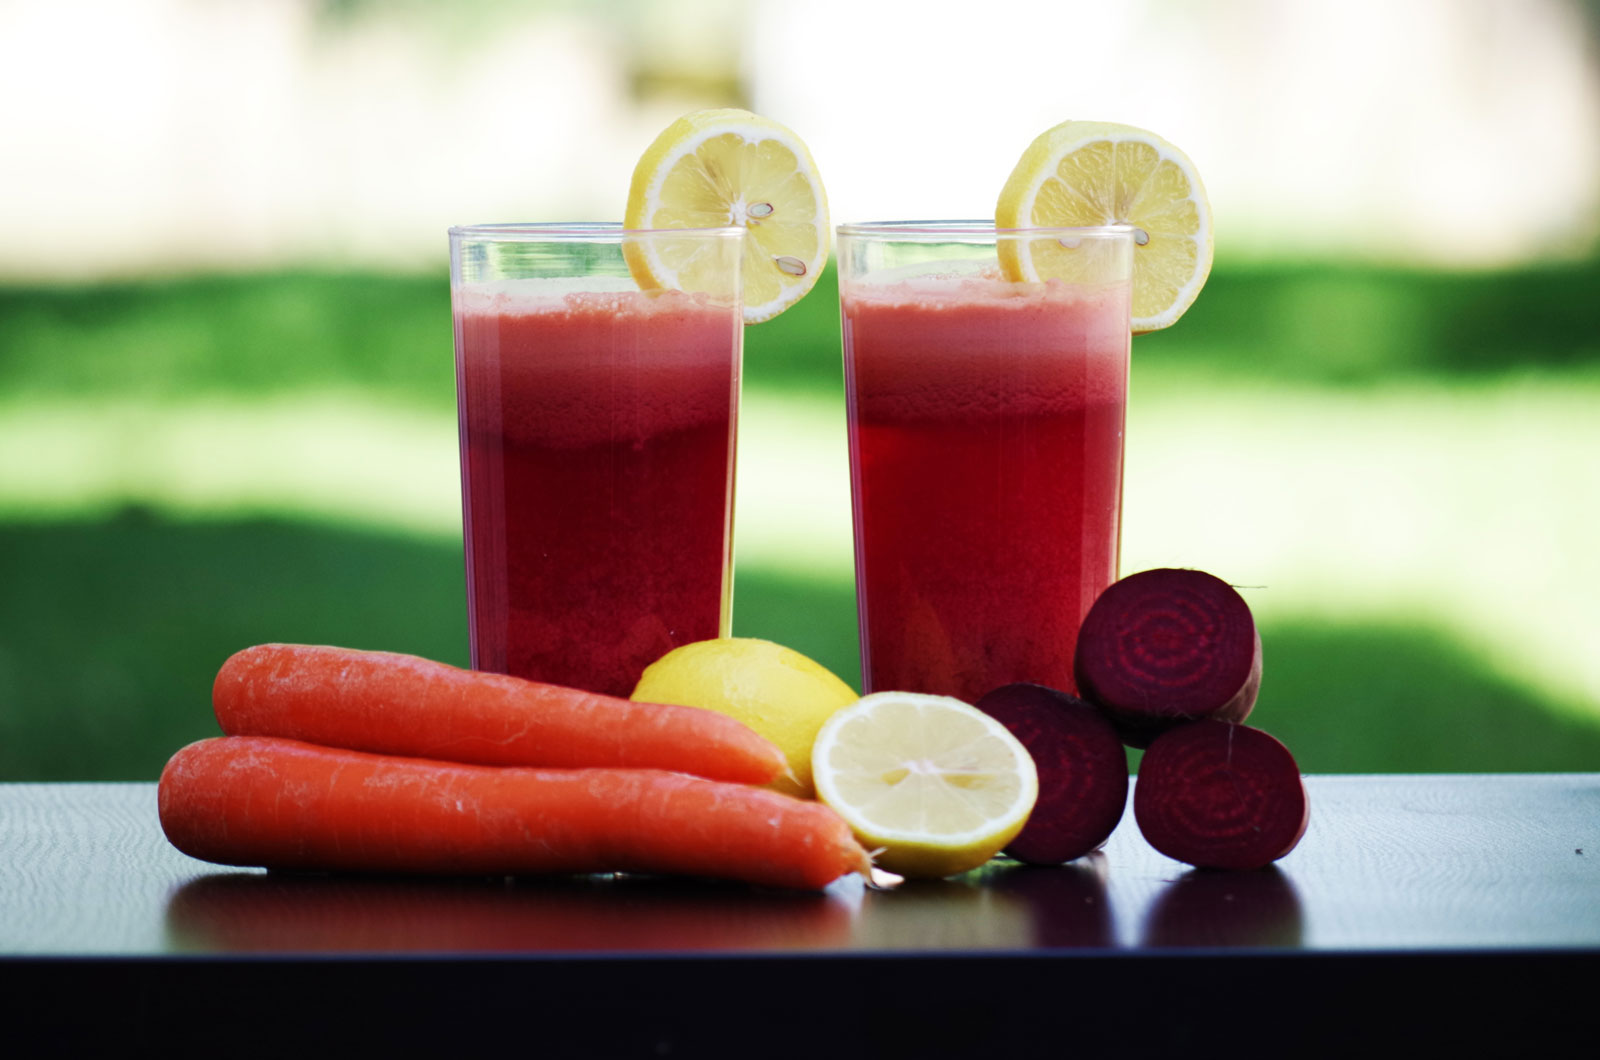 Vegetable Juice   Healthy Happy Hour With These Vegetable Juice Cocktails